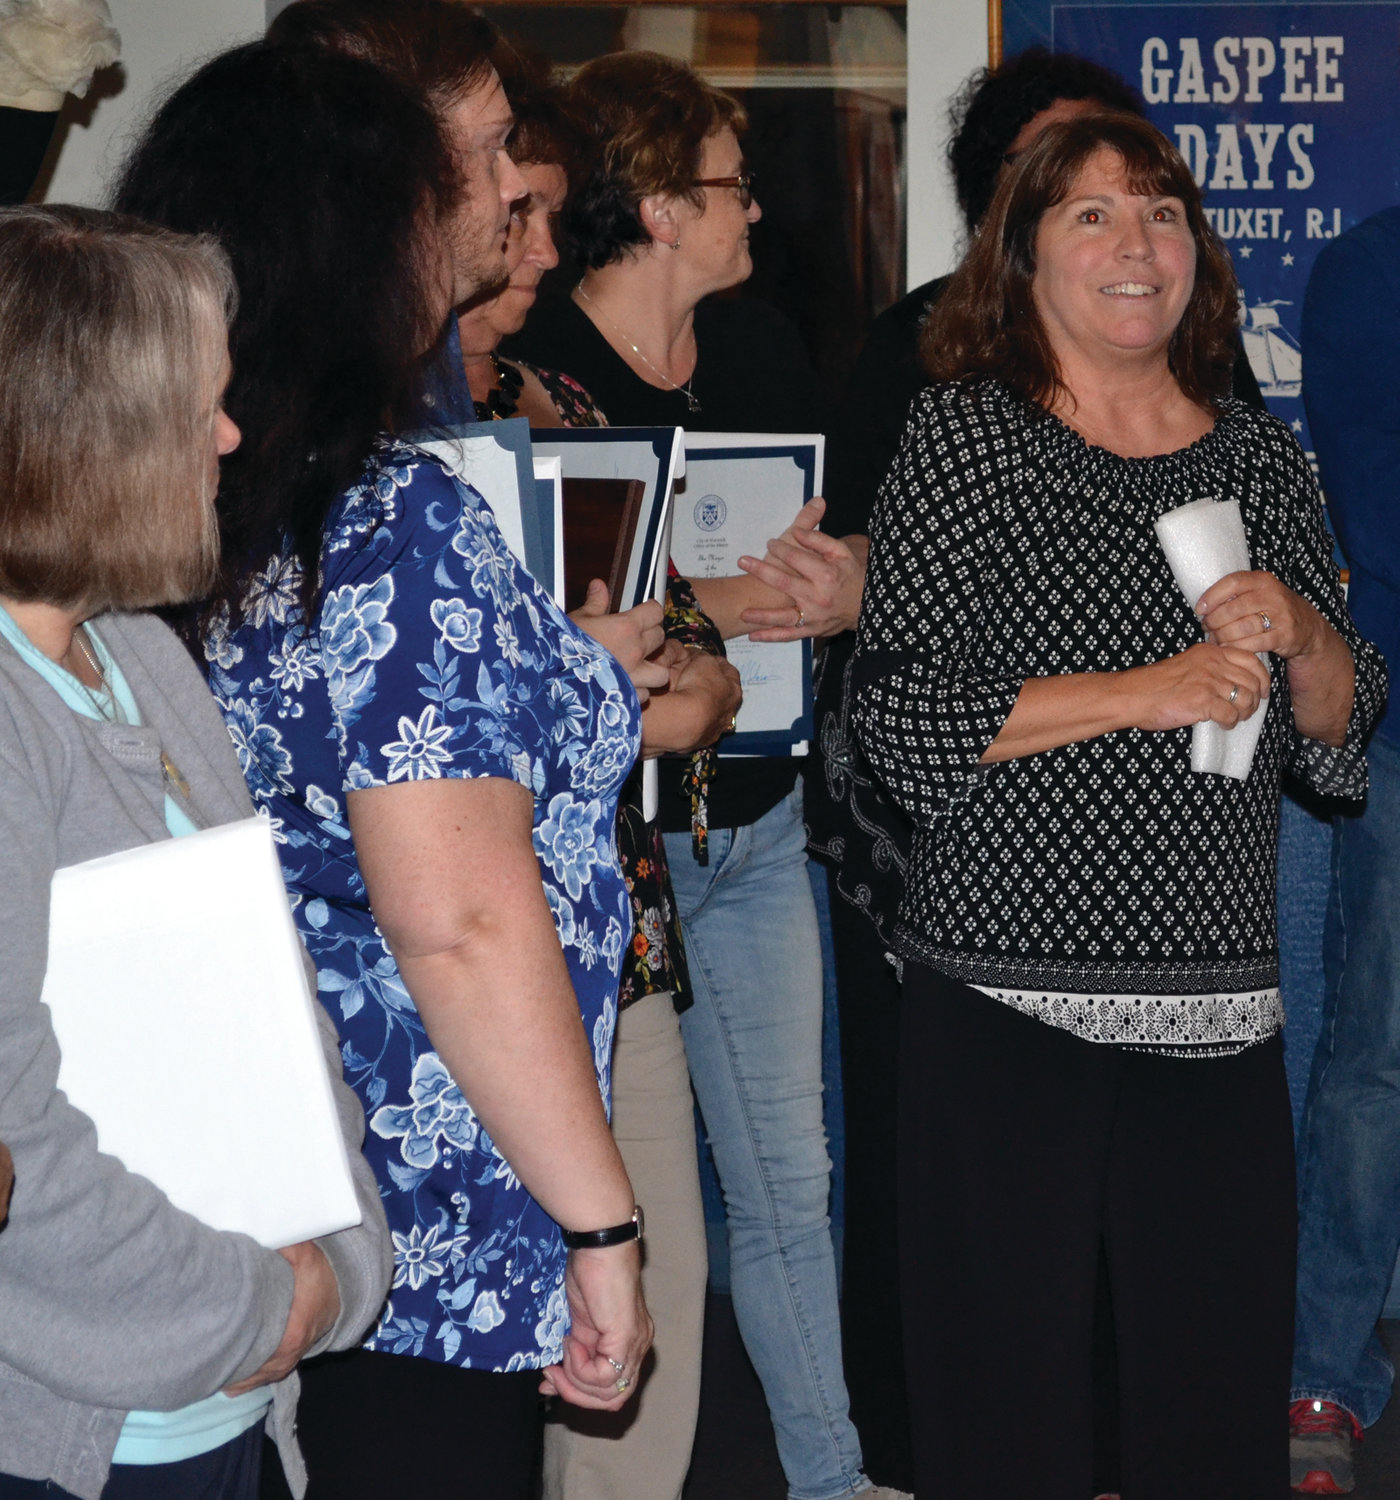 BRIGHT FUTURE: Gina Dooley gave her first remarks as the newest president of the Gaspee Days Committee, telling attendees about the first-ever Gaspee Days Fall-Out set for Oct. 12 in Pawtuxet Park.